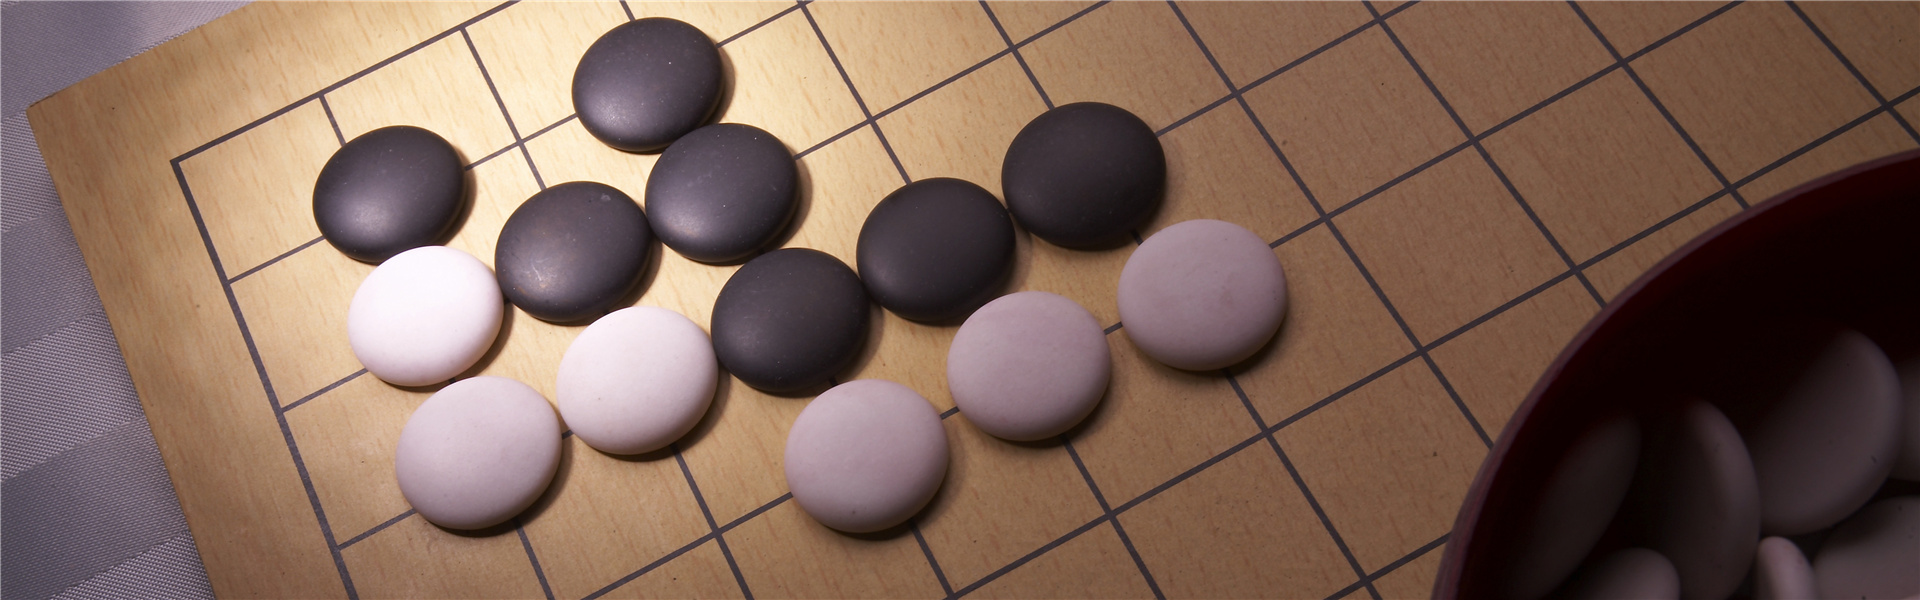 Quzhou, CWA to jointly popularize game of Go